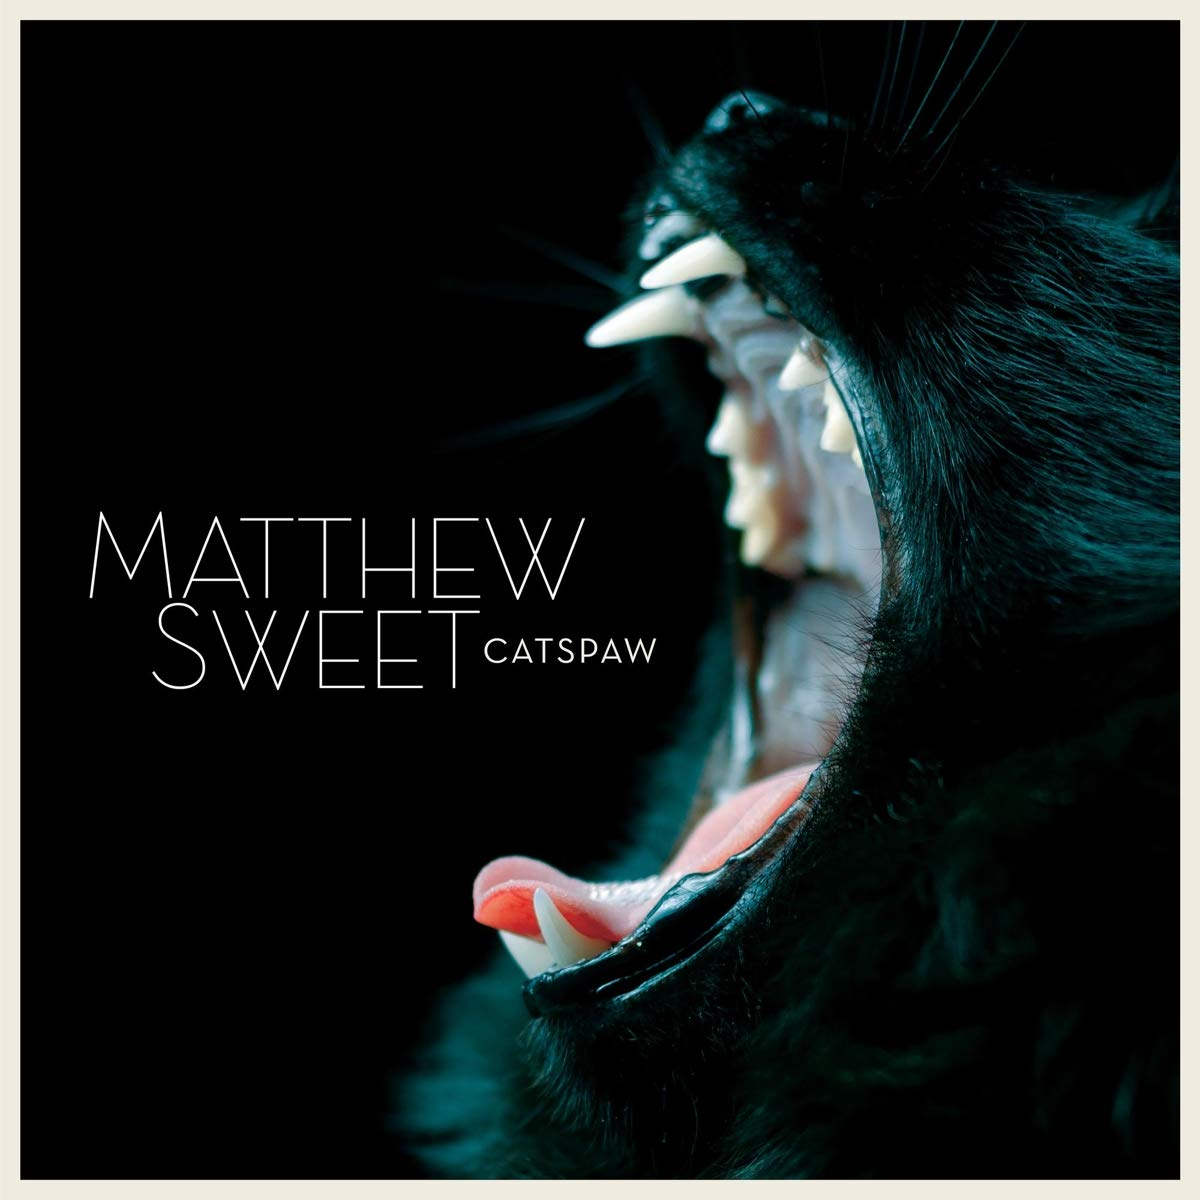 Matthew Sweet: Catspaw [Album Review]